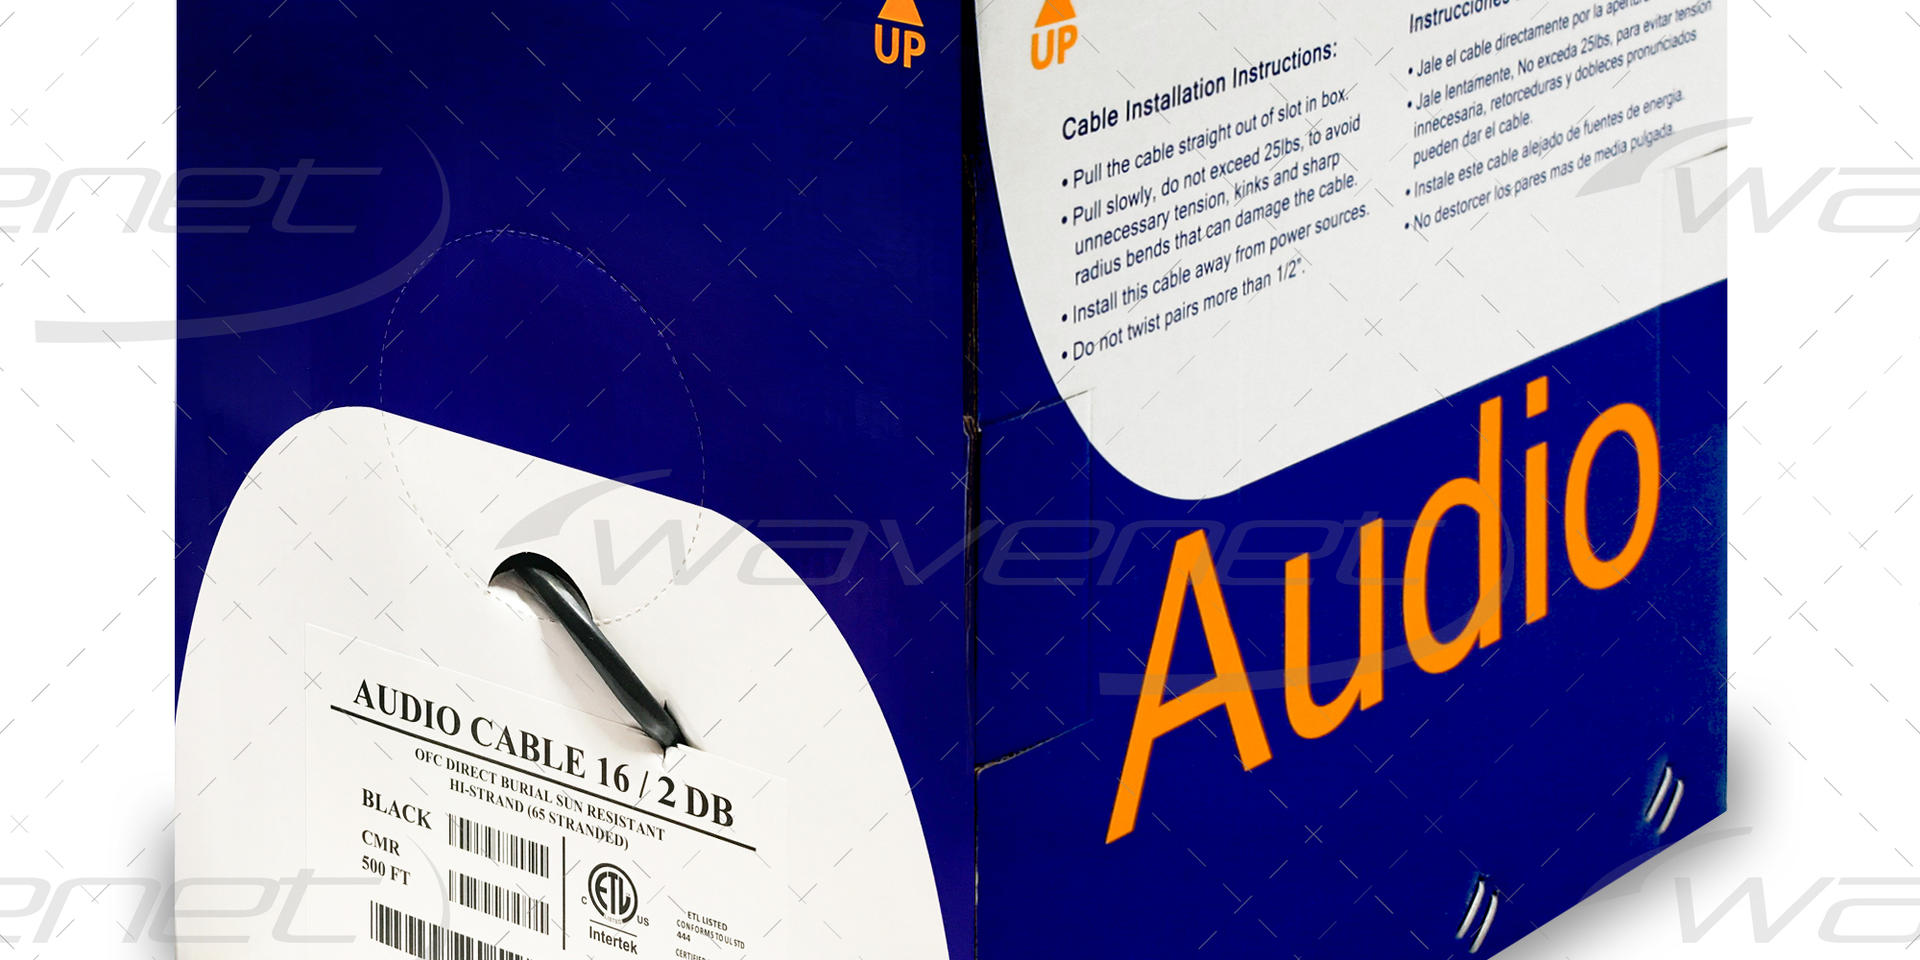 AUDIO CABLE 16/2 DB UV RATED 500'